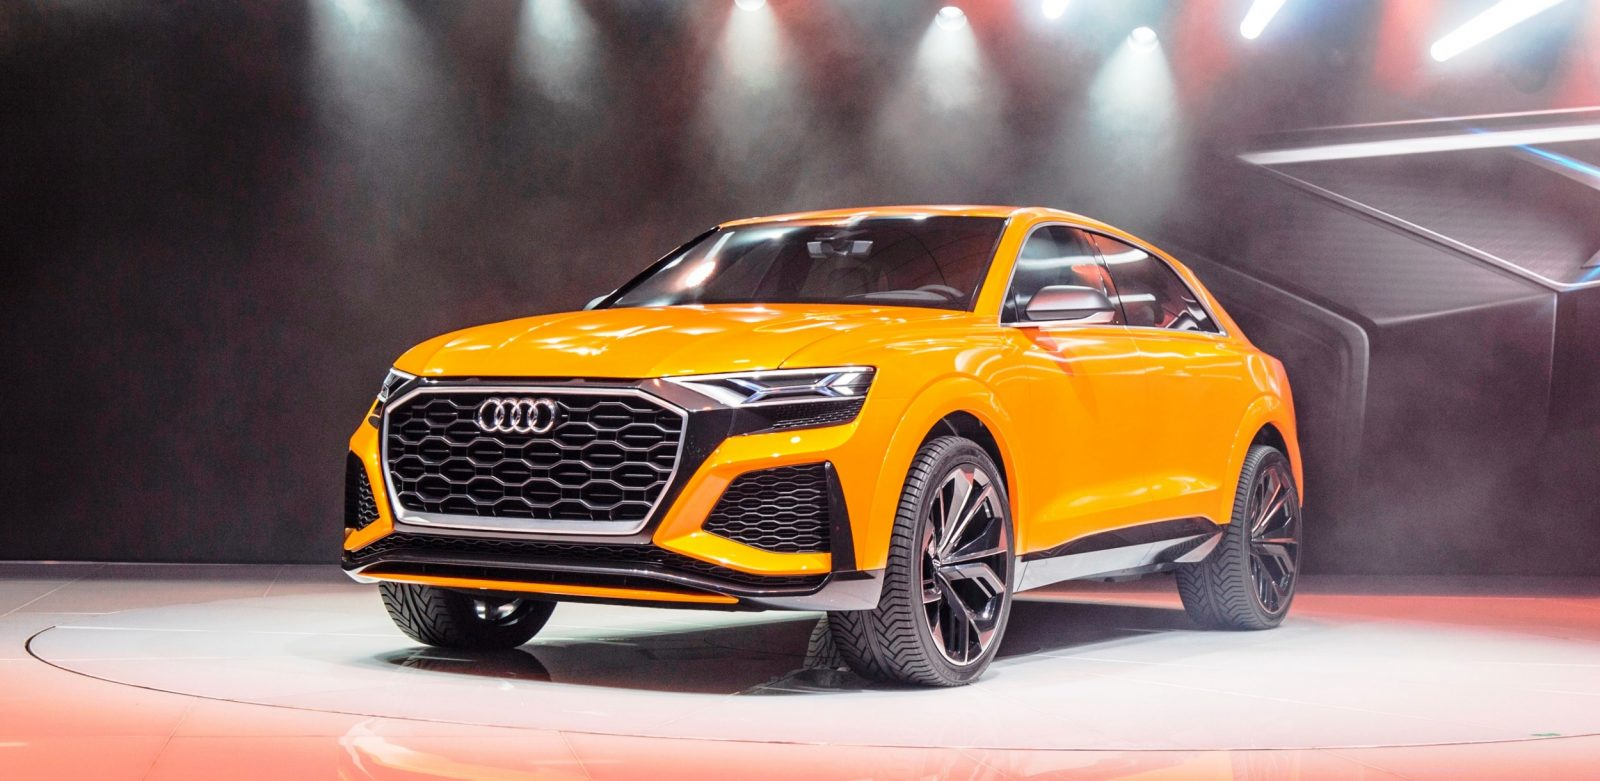 audi q8 confirmed for 2019 modelyear 22 new photos car. Black Bedroom Furniture Sets. Home Design Ideas